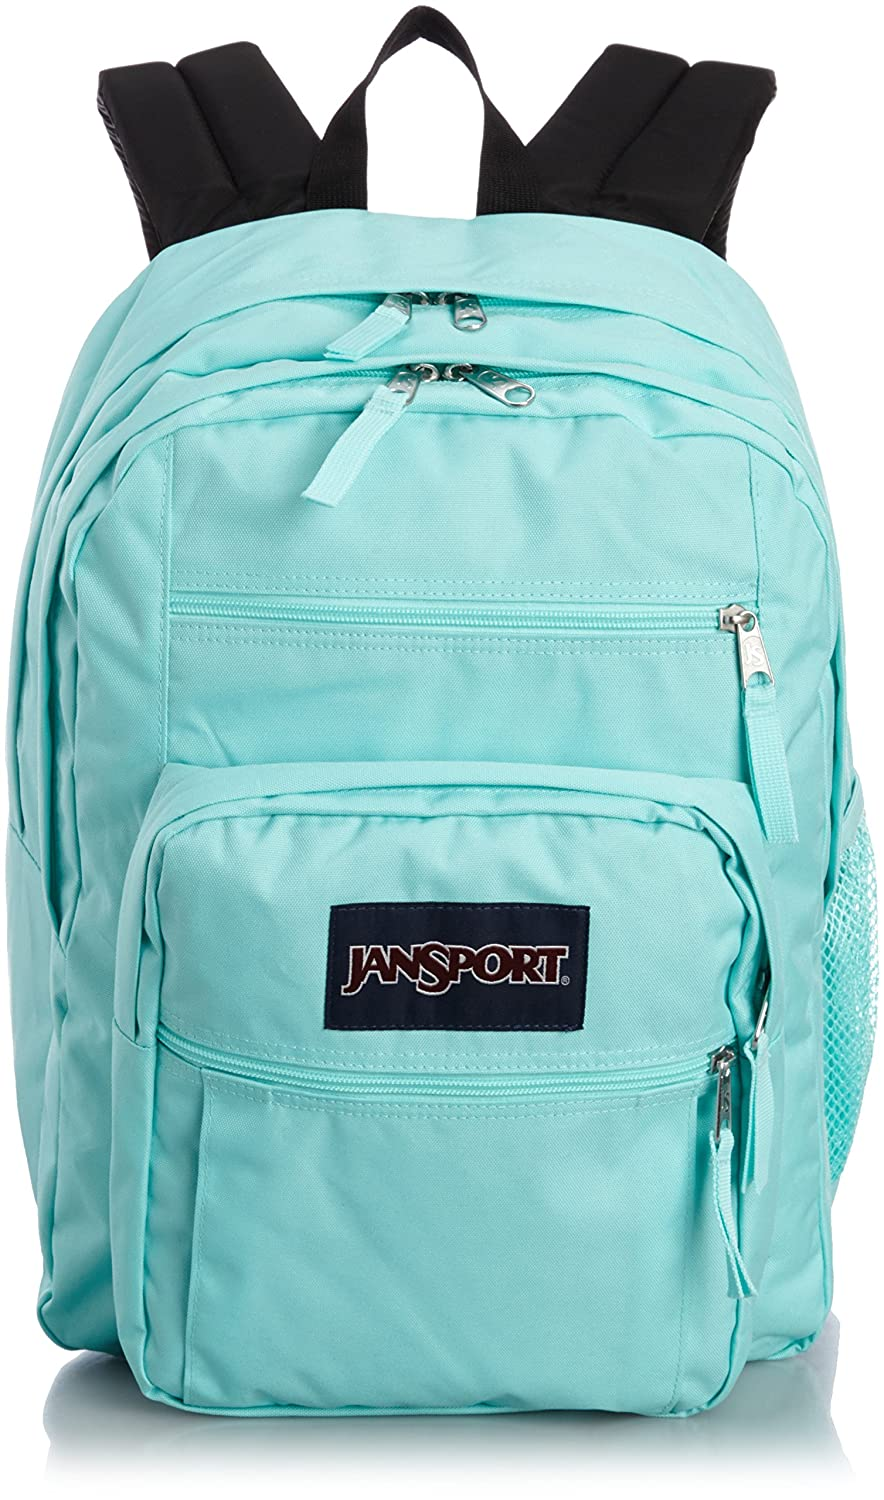 8182c3e0e902 Amazon.com  JanSport Big Student Backpack